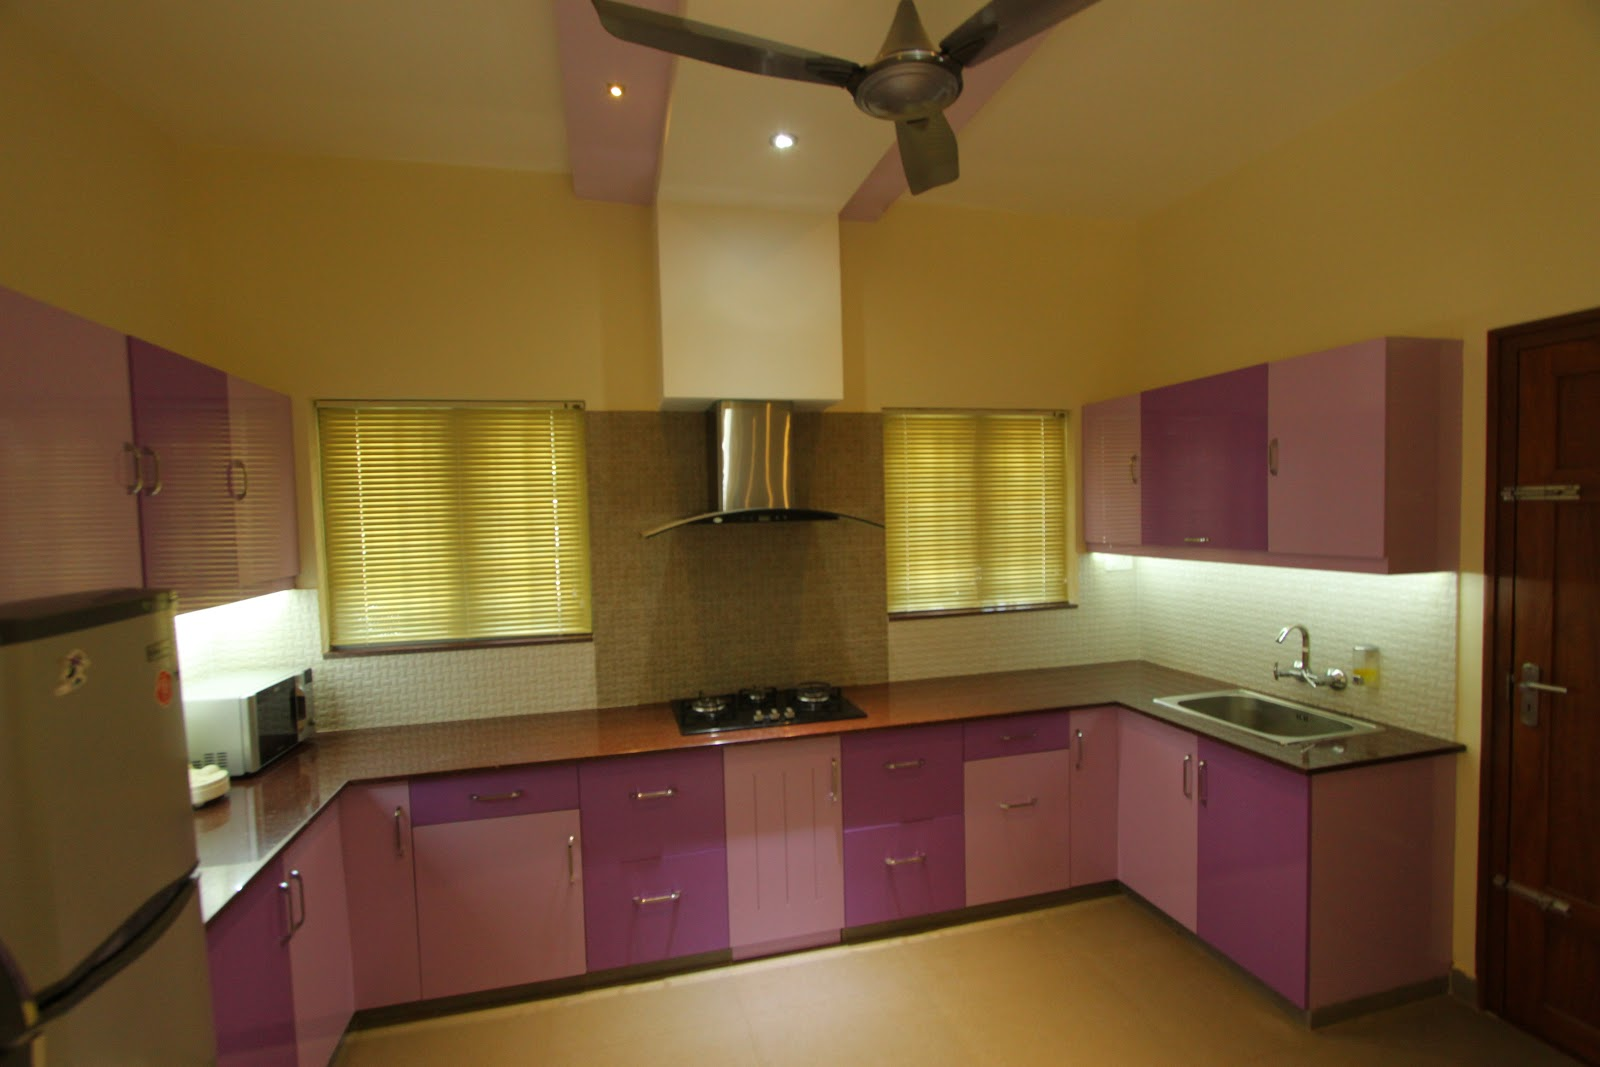 Shilpakala interiors - Home interior design kitchen pictures ...